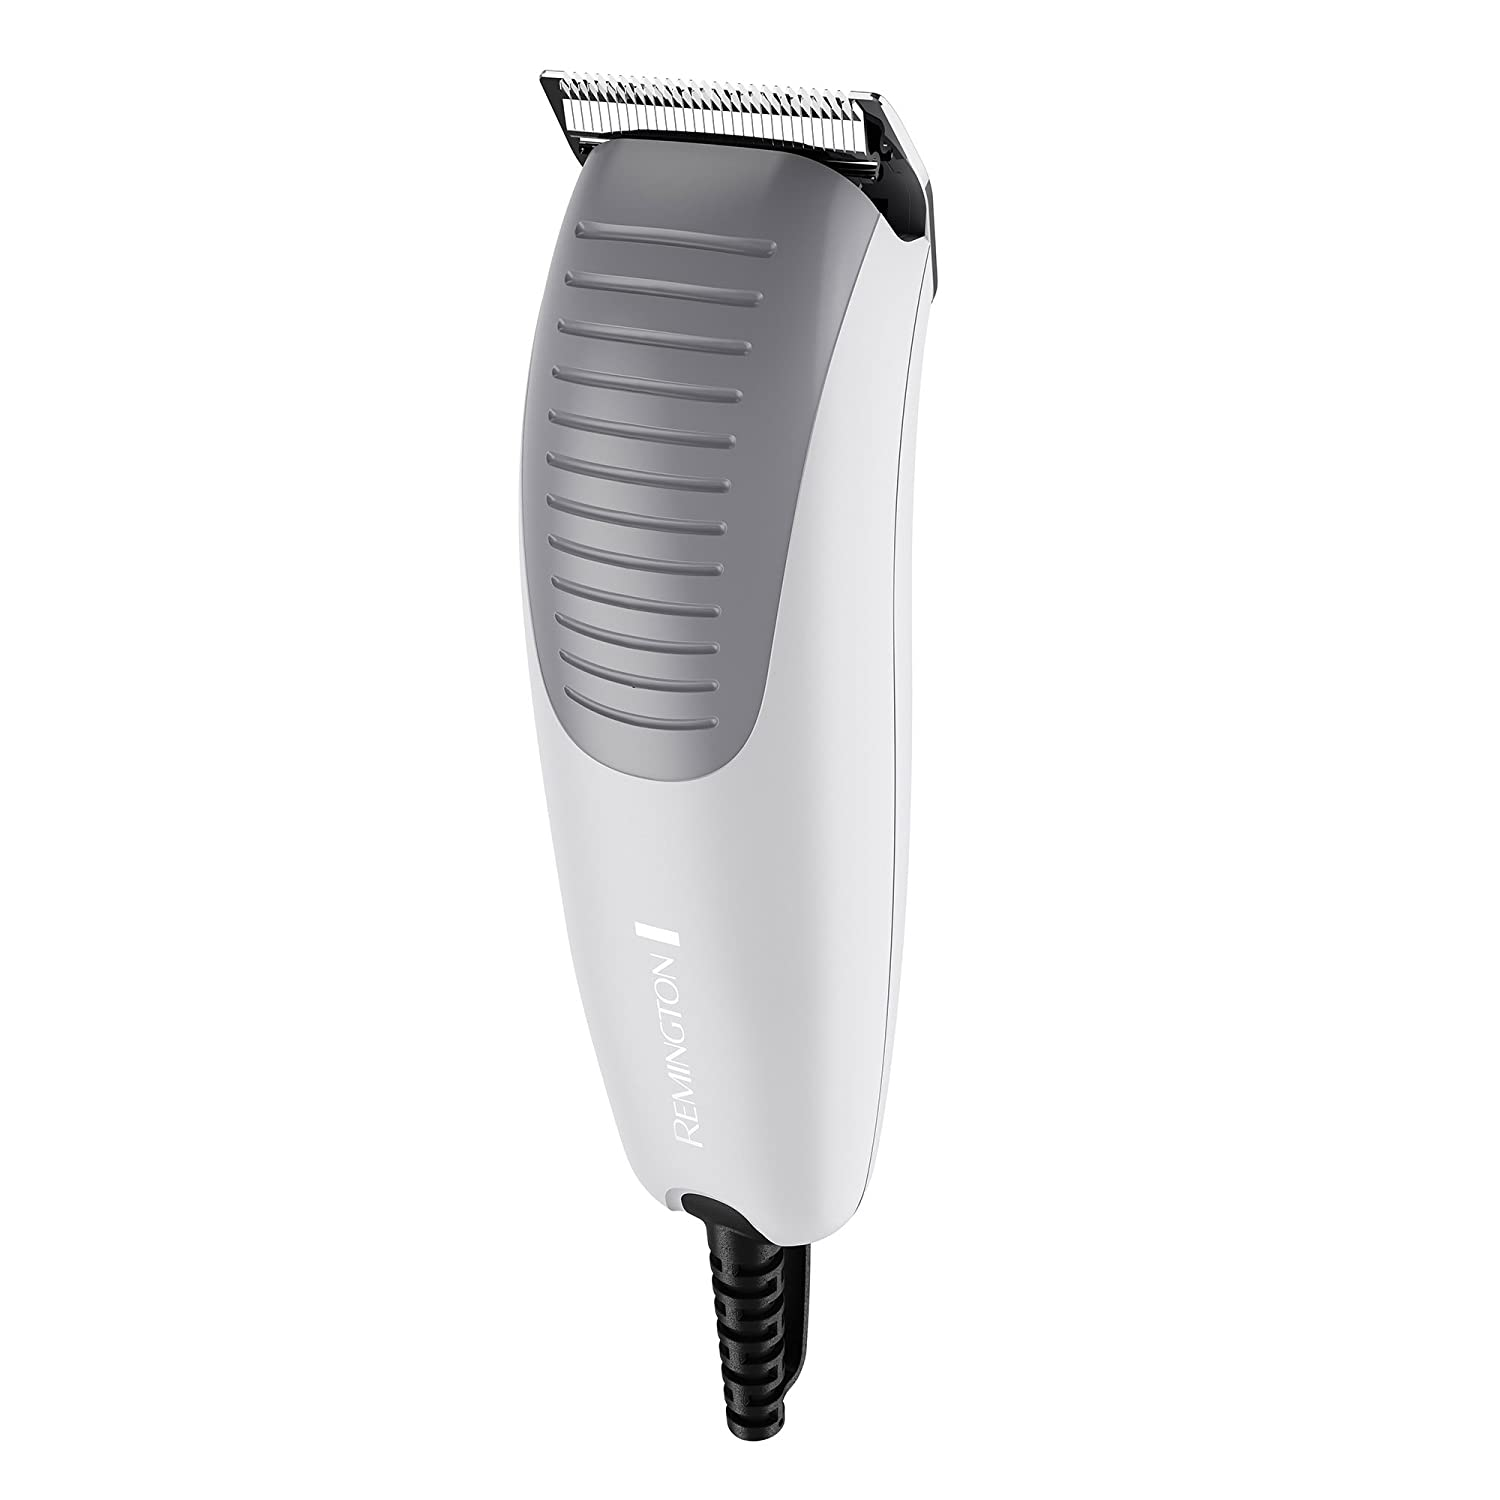 remington haircut and beard trimmer remington hc5070 easy select haircut kit hair clippers 4426